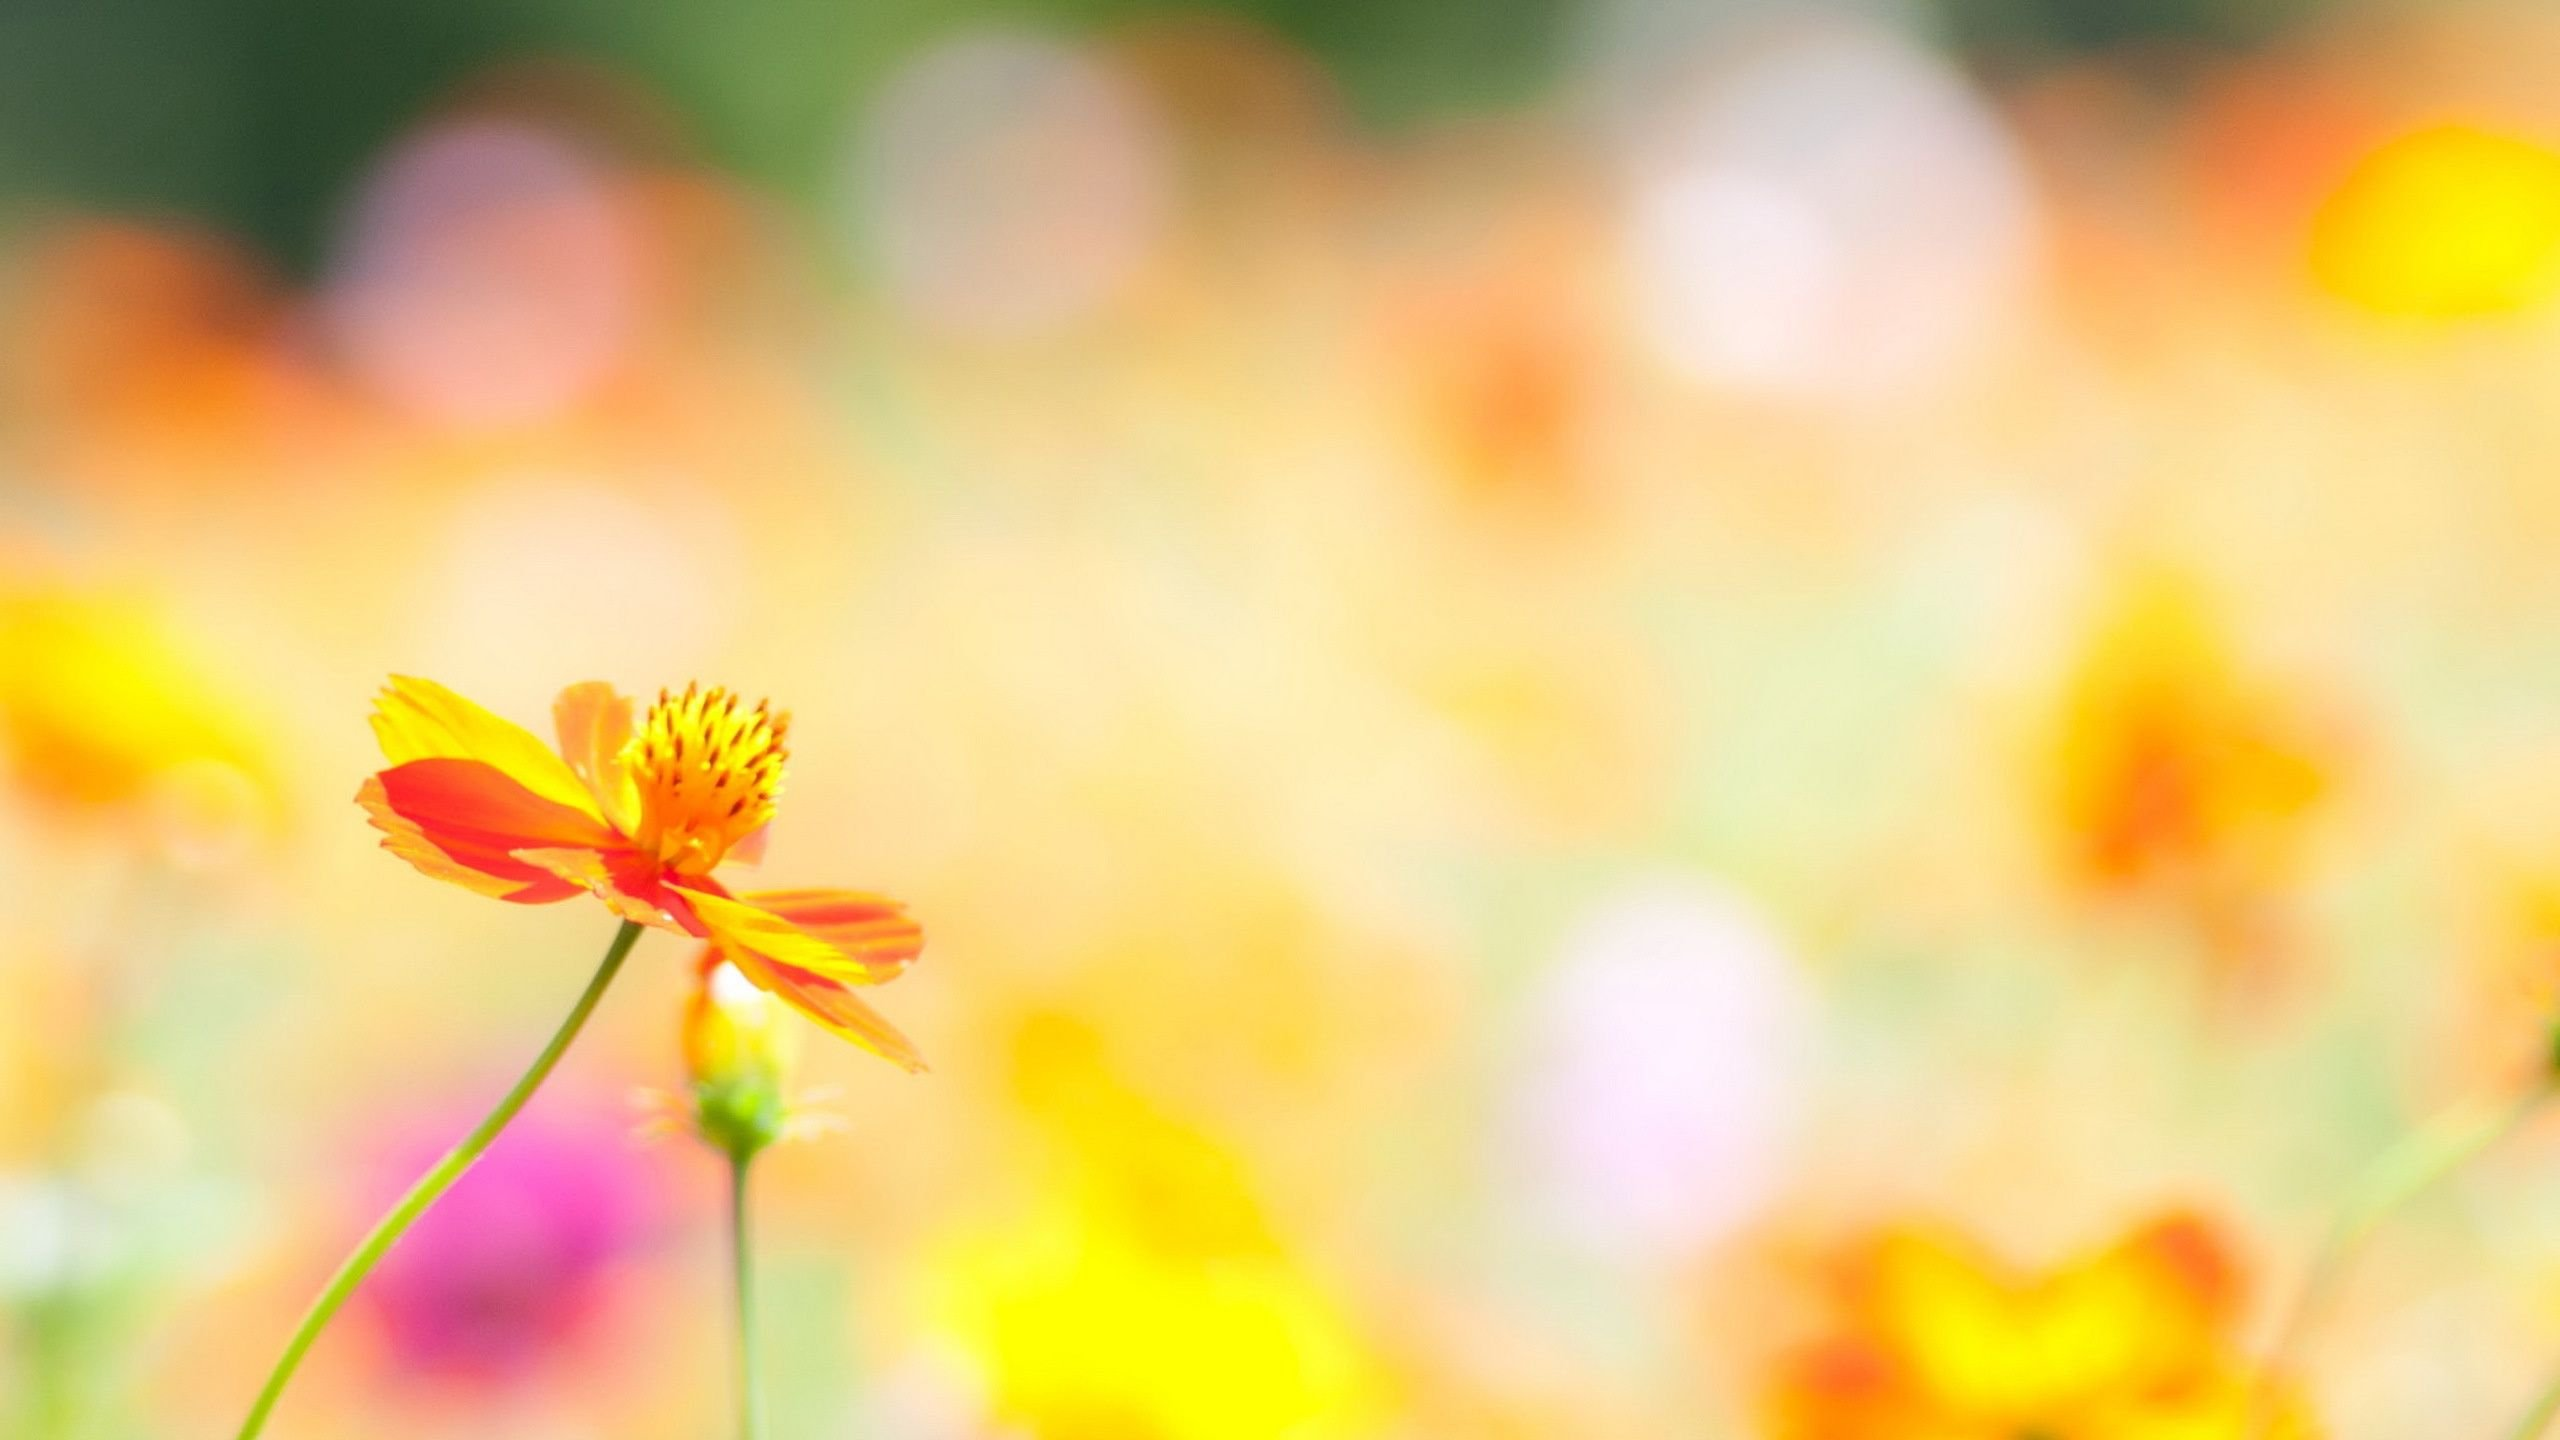 Flowers Images | Large HD Wallpaper Database | flowers | Pinterest ...